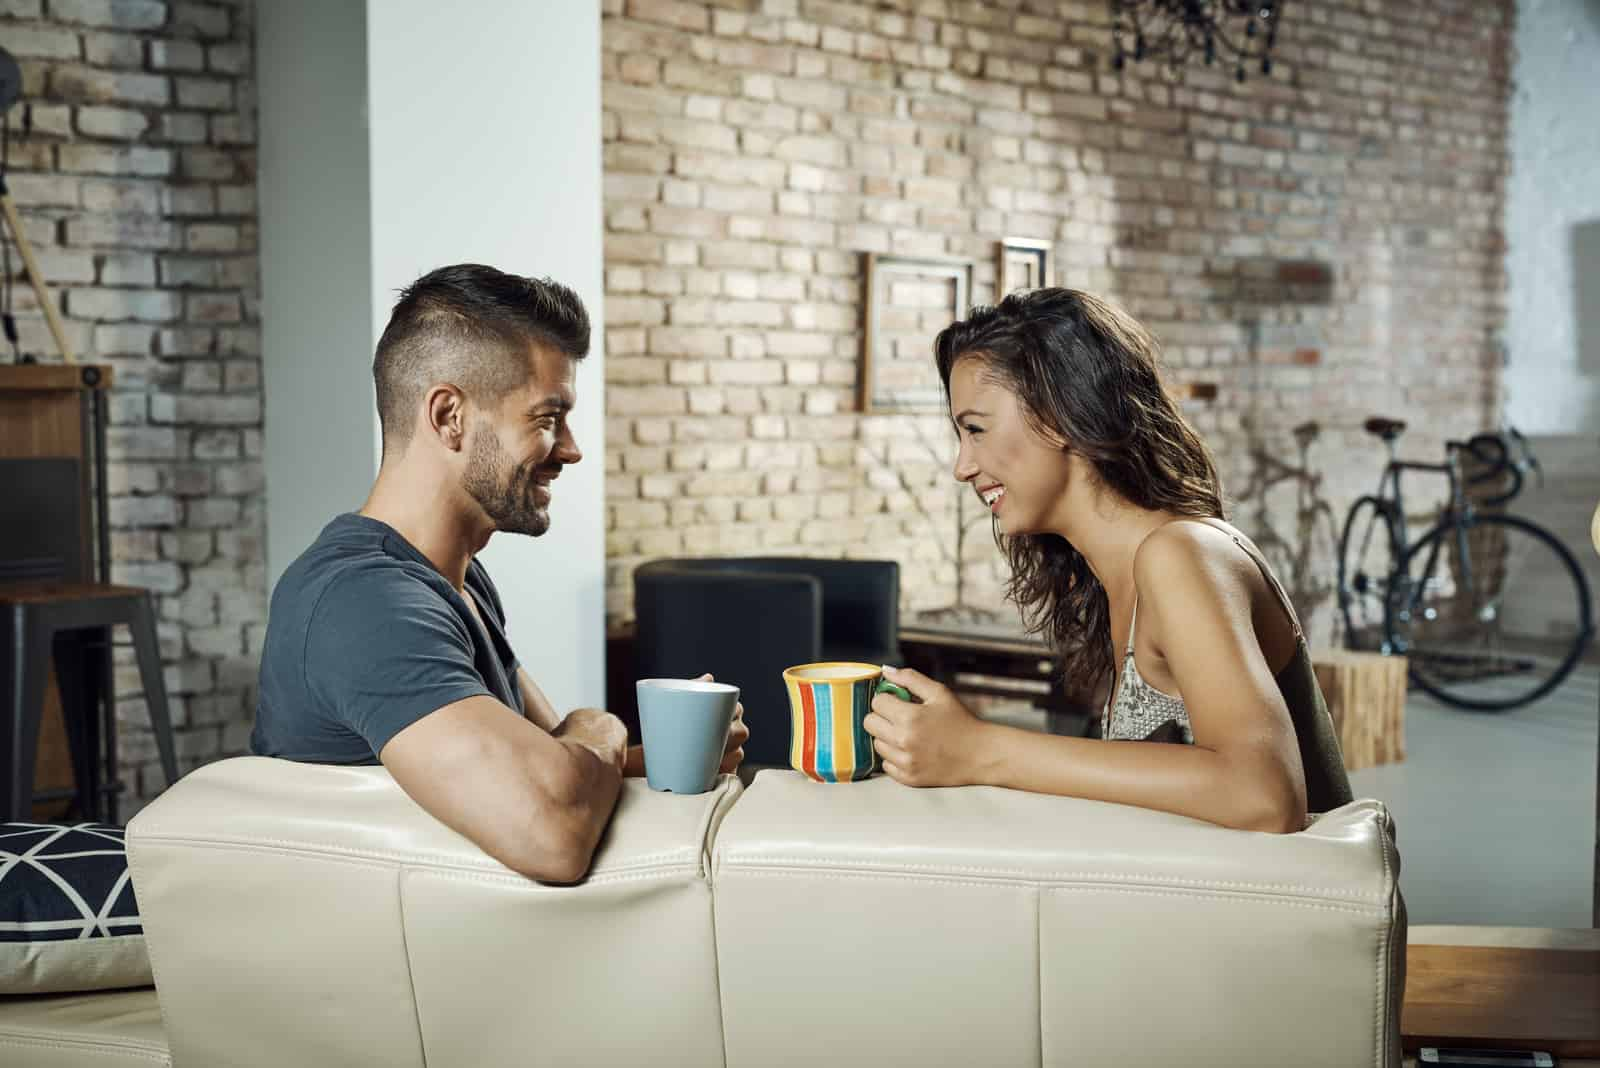 a man and a woman sit on the couch drinking coffee and talking